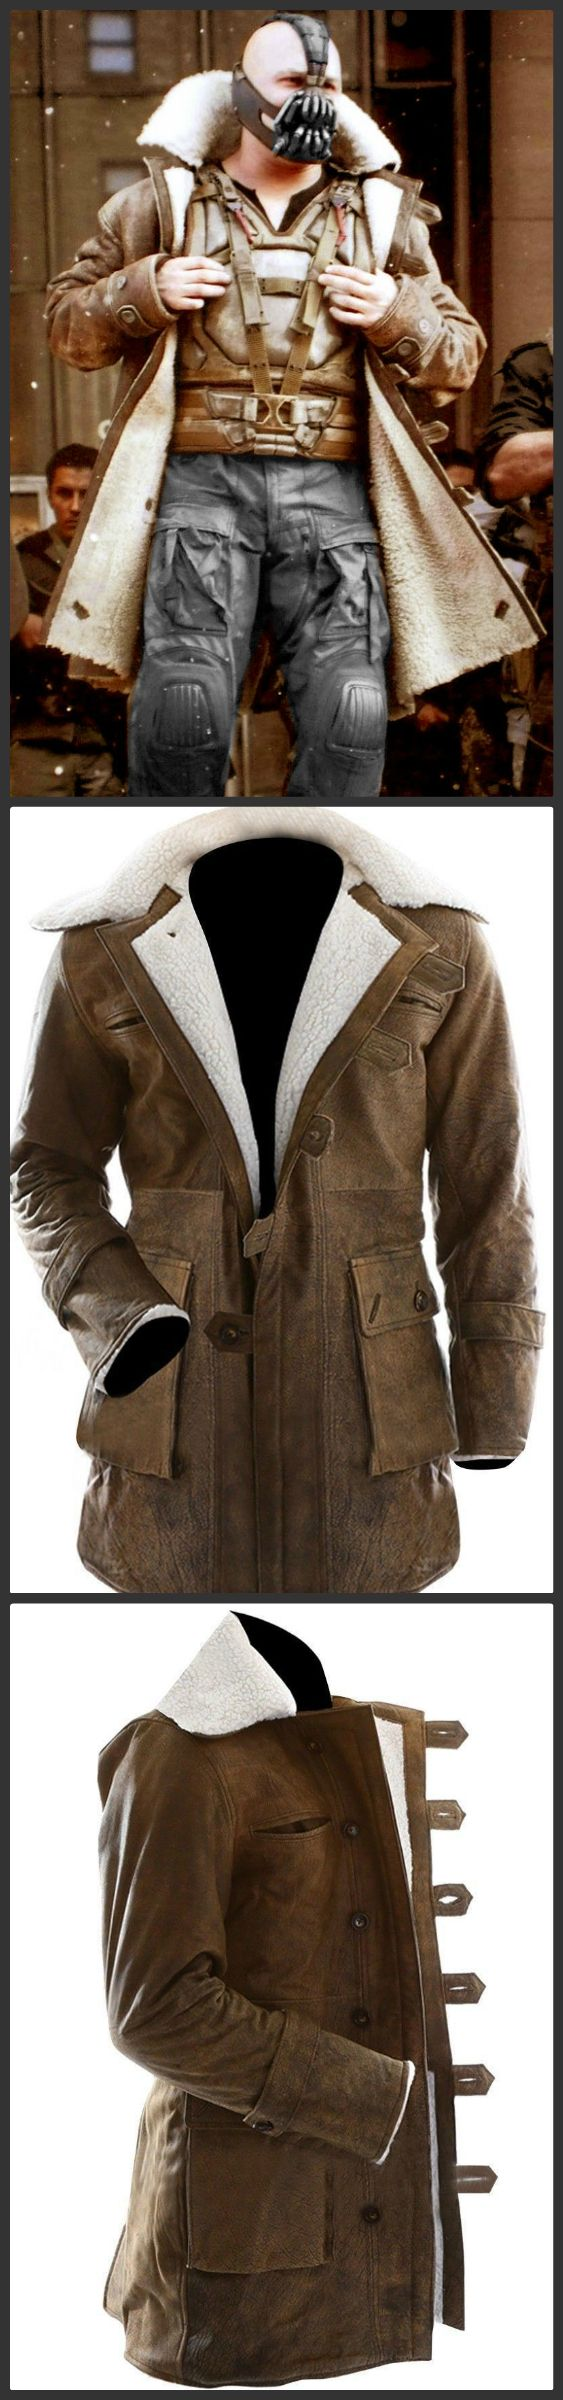 BANE Dark Knight Rises Brown Trench Coat:   Fantastic Outfit from the movie Dark Knight Rises worn by Famous Actor Tom Hardy now available in our online store Eagleoutfits. Grab Now BANE Dark Knight Rises Brown Trench Coat at Affordable Price.  #bane #banecoat #darkknightrises #browntrenchcoat #trenchcoat #tomhardy #movie #hollywood #halloween #like #likeforlikes #like4likes #fashionbloggers